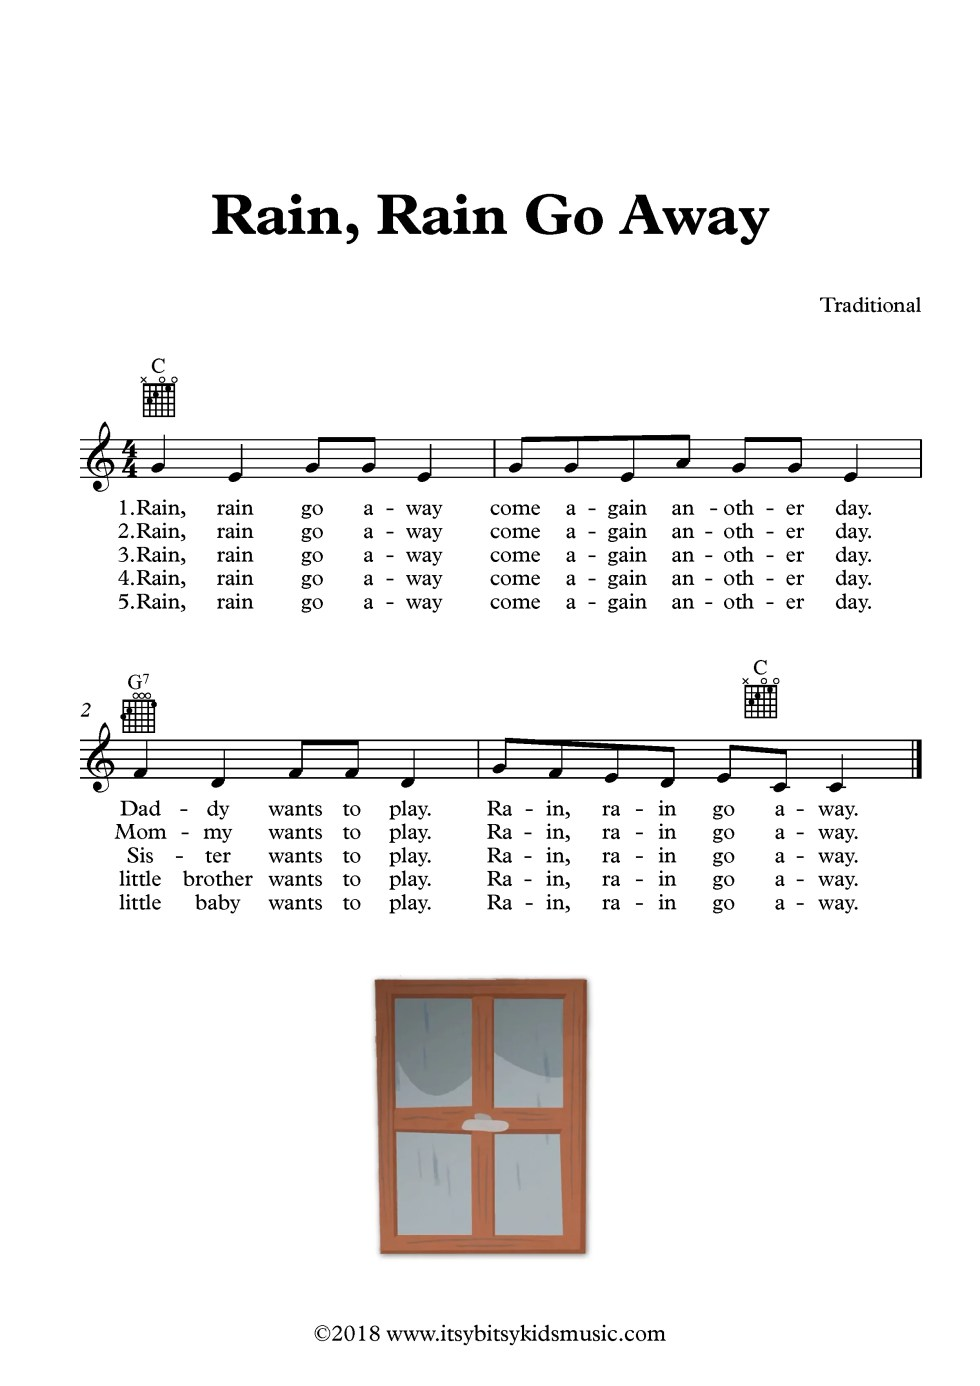 rain rain go away song sheet music with chords and lyrics itsy bitsy kids music. Black Bedroom Furniture Sets. Home Design Ideas